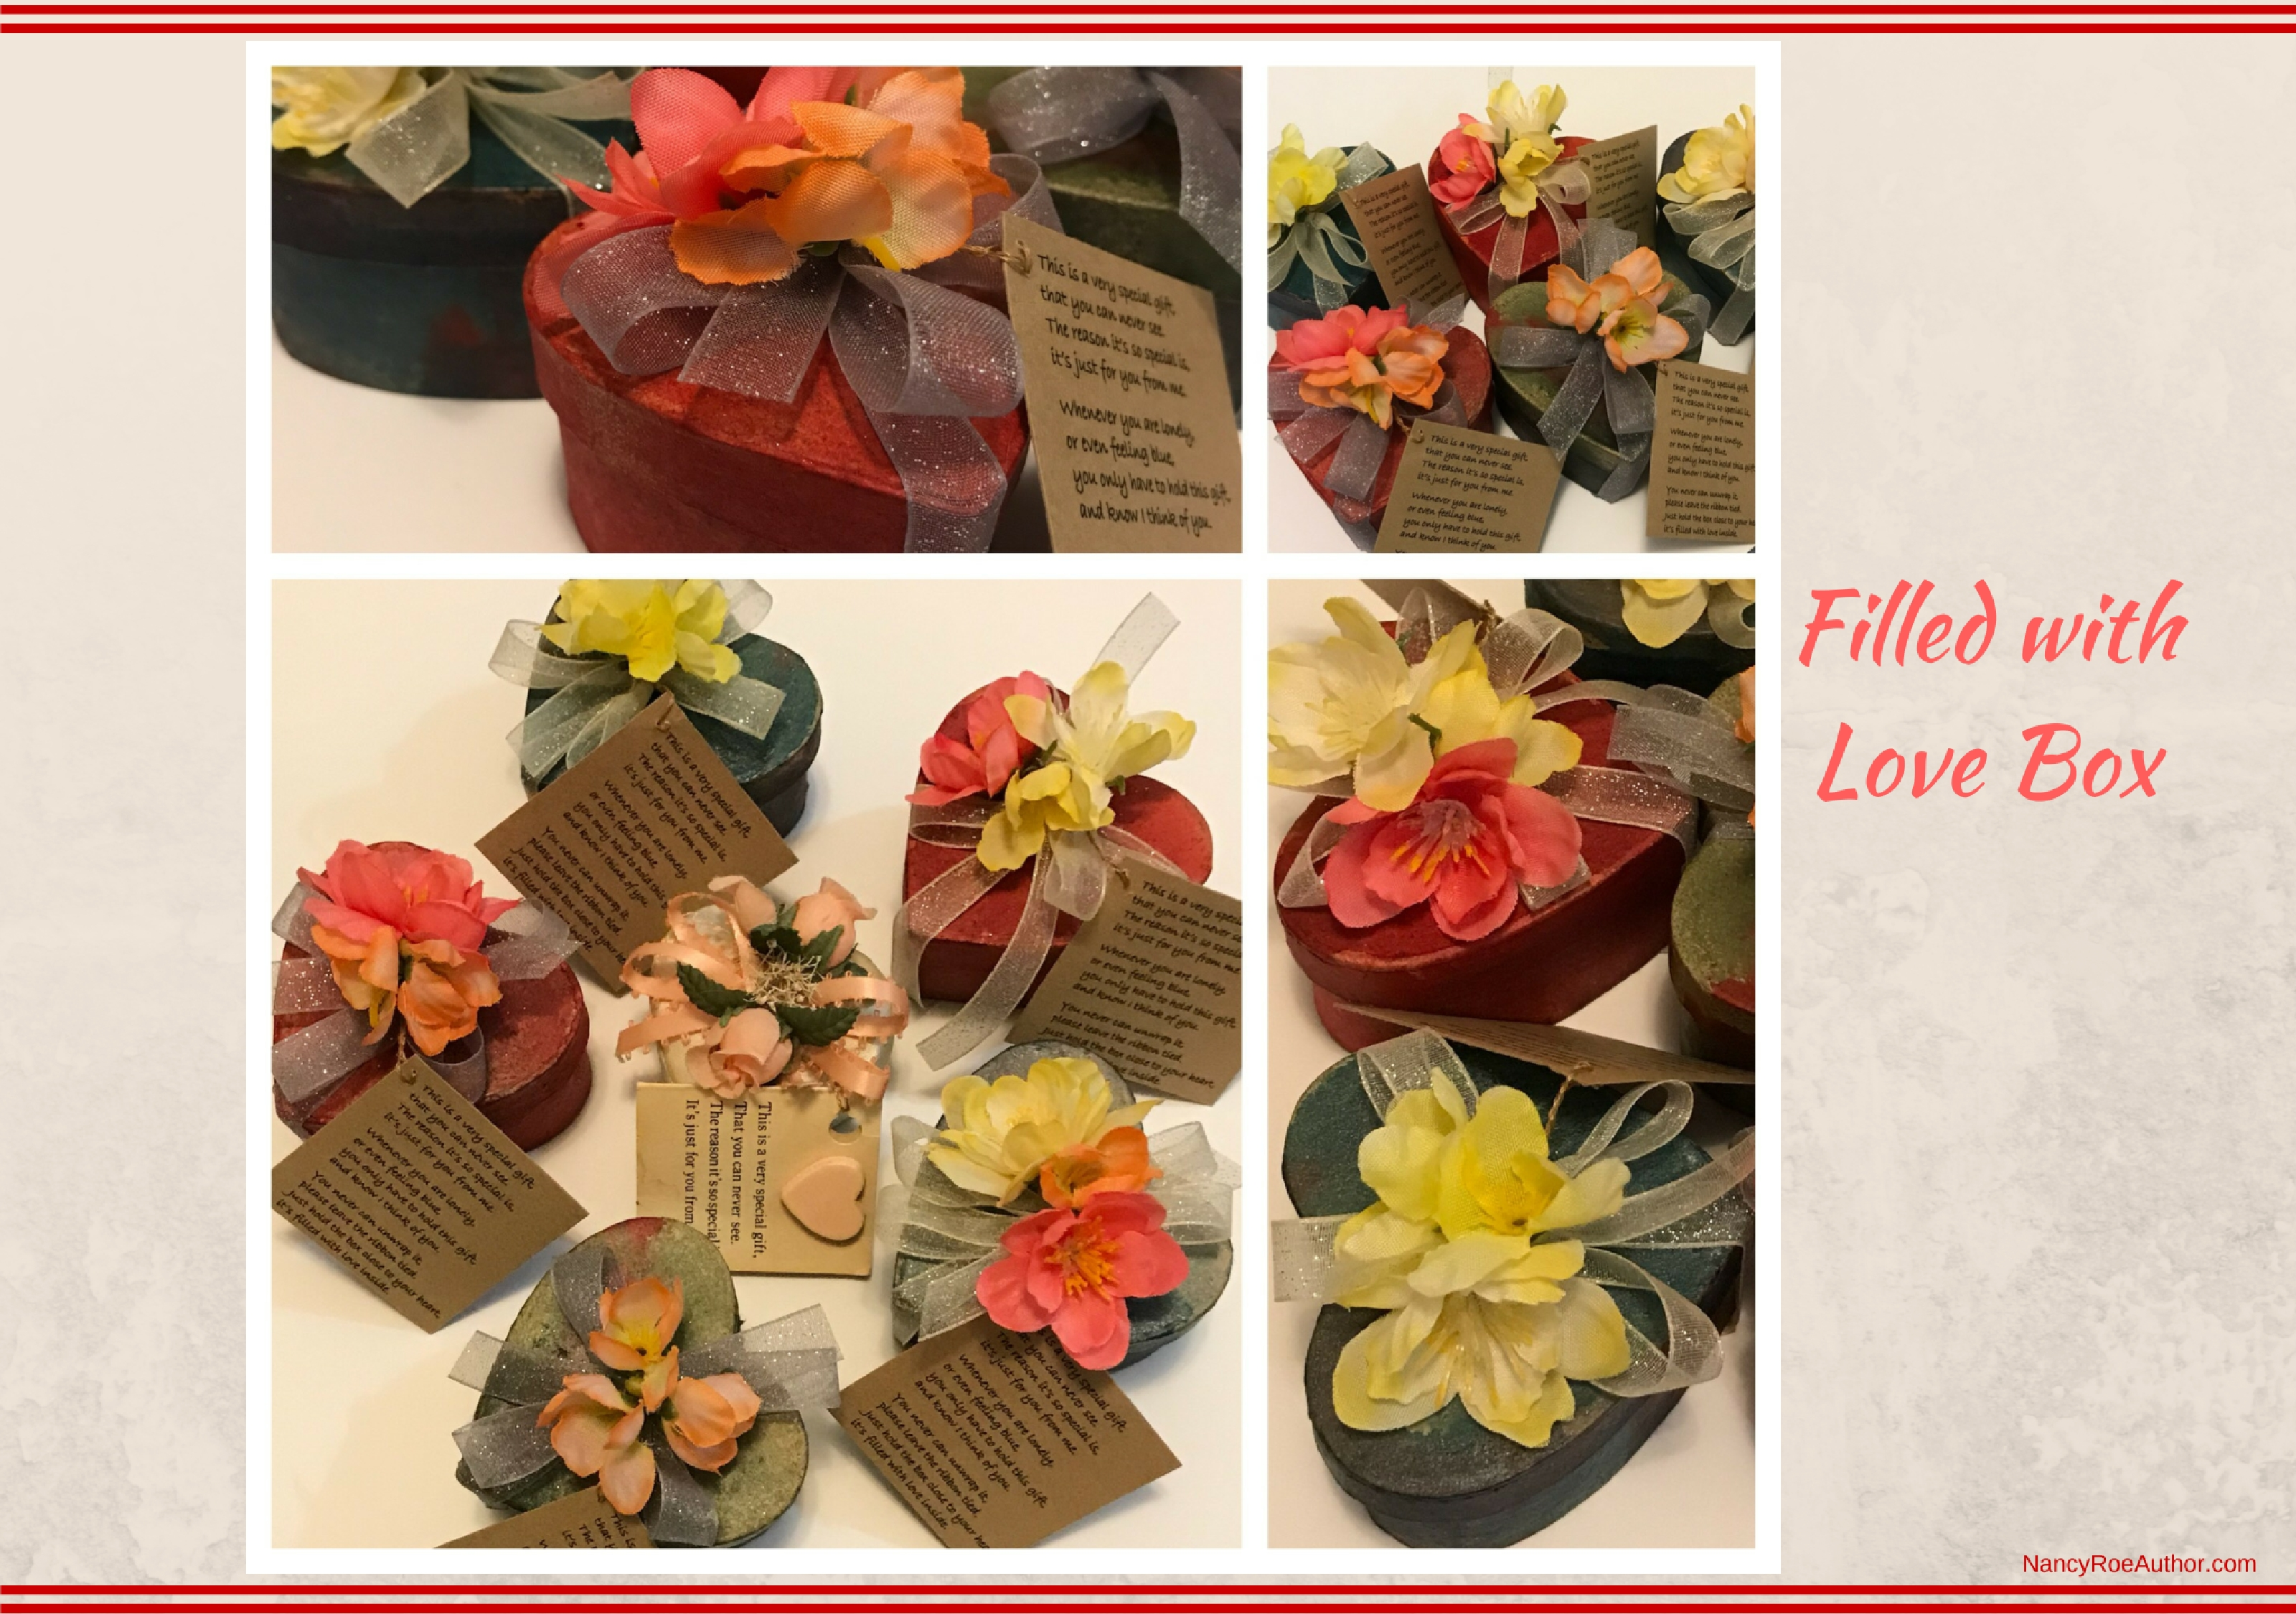 Filled with Love Box